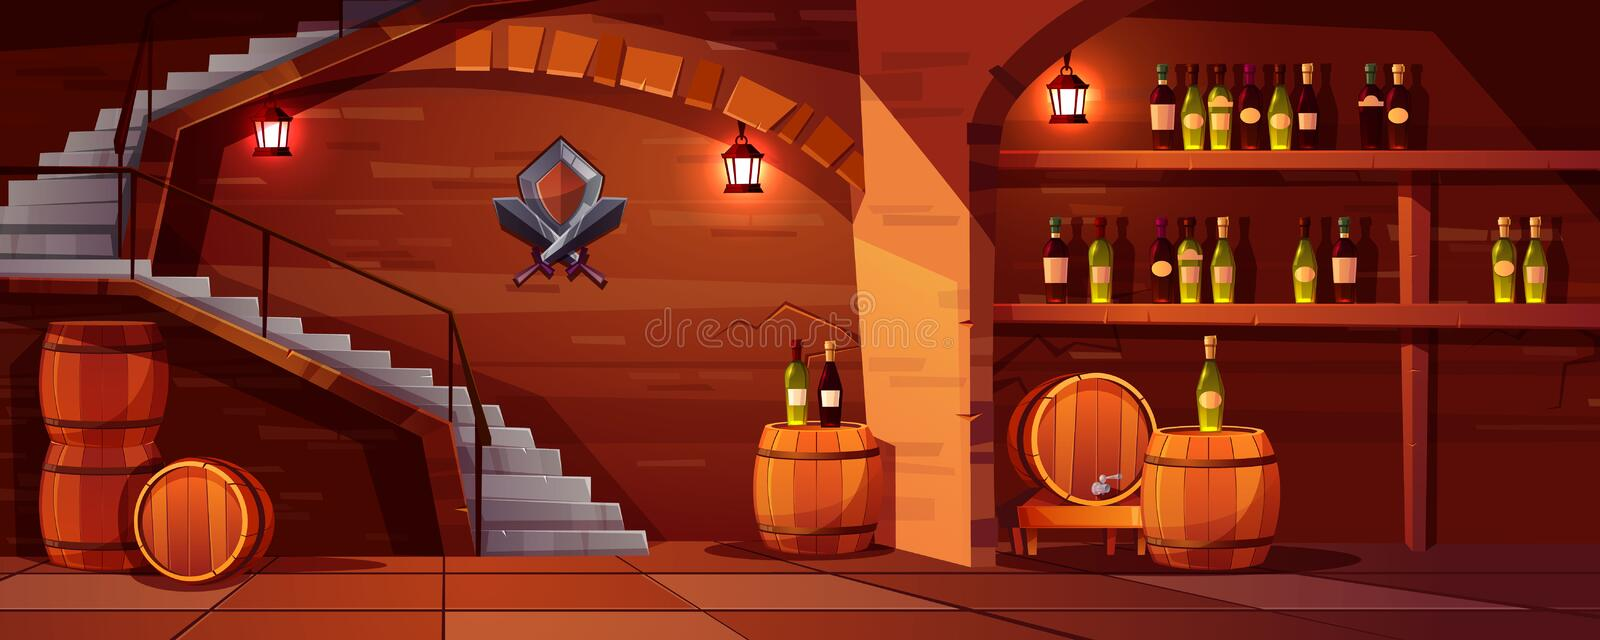 Vector wine cellar with wooden barrels, bottles. Vector wine cellar background, cozy space with wooden barrels, glass bottles. Alcohol, winemaking room with stock illustration